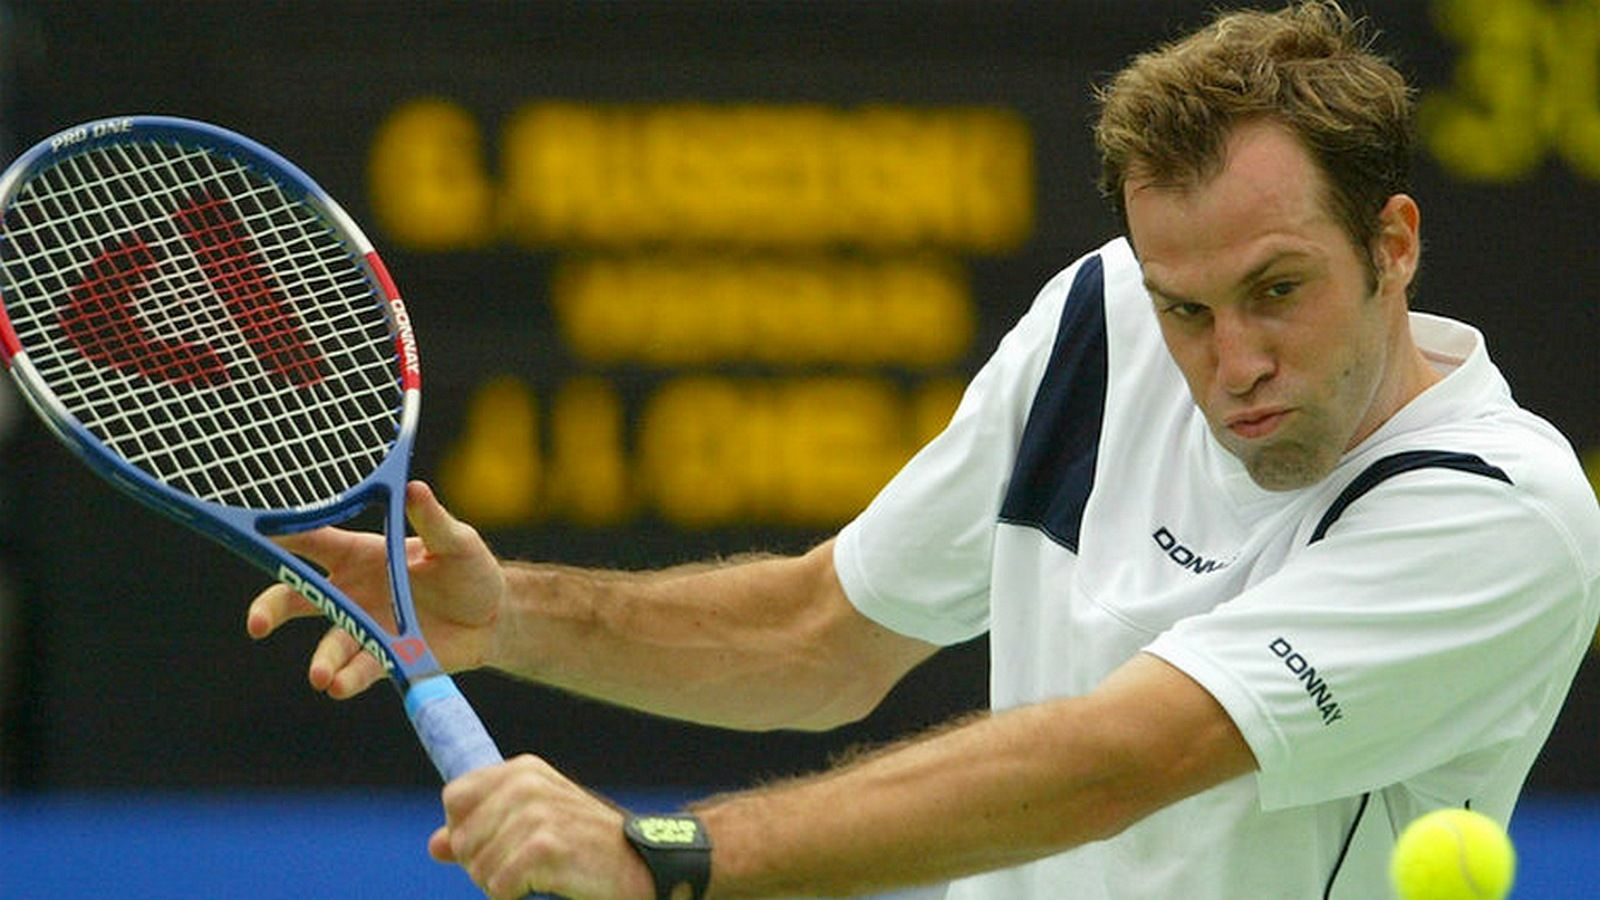 The classic tennis player: Greg Rusedski